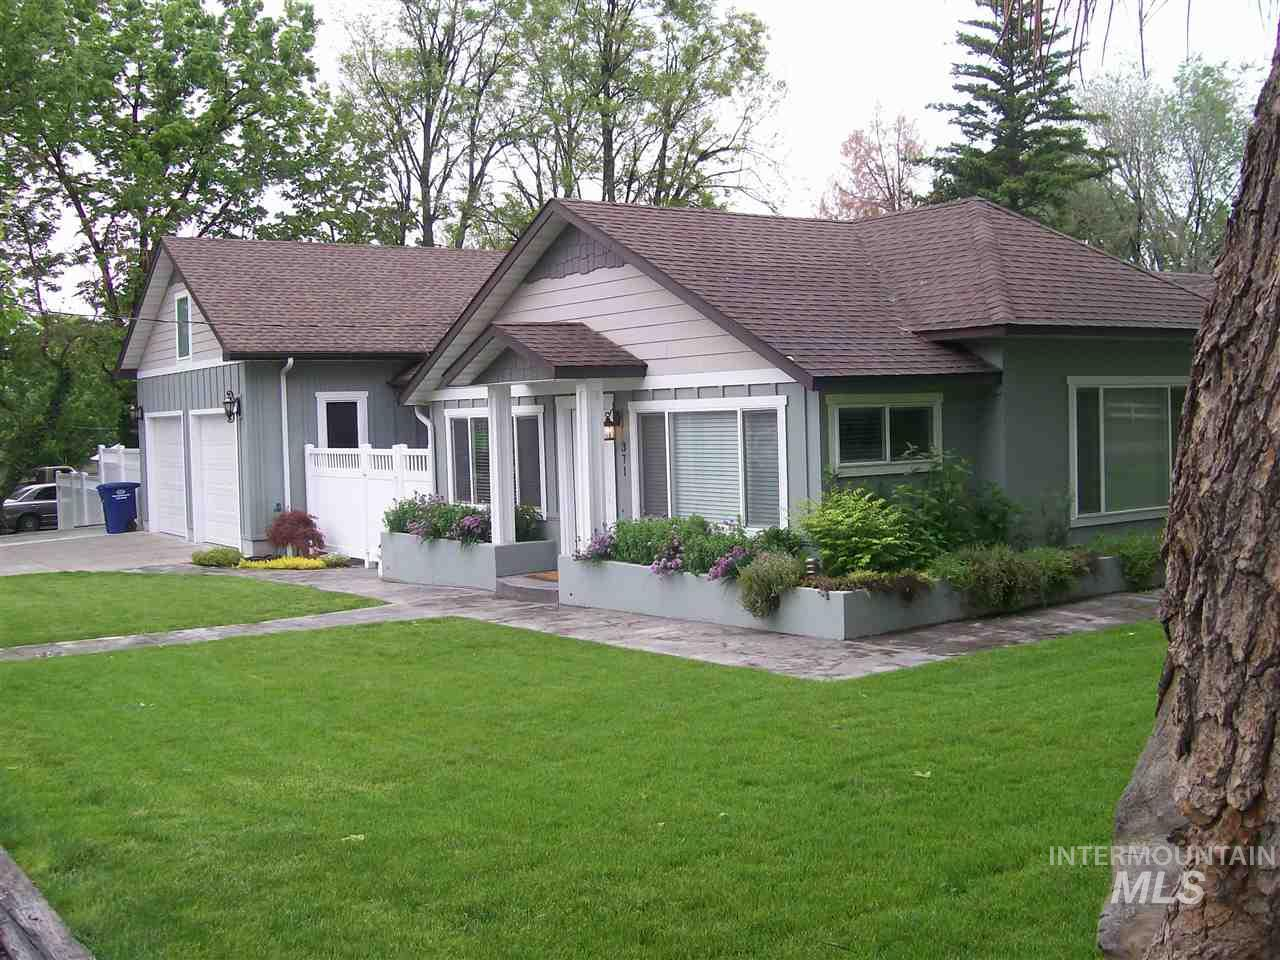 371 E Orchard, Hagerman, Idaho 83332, 3 Bedrooms, 2 Bathrooms, Residential For Sale, Price $250,000, 98730166